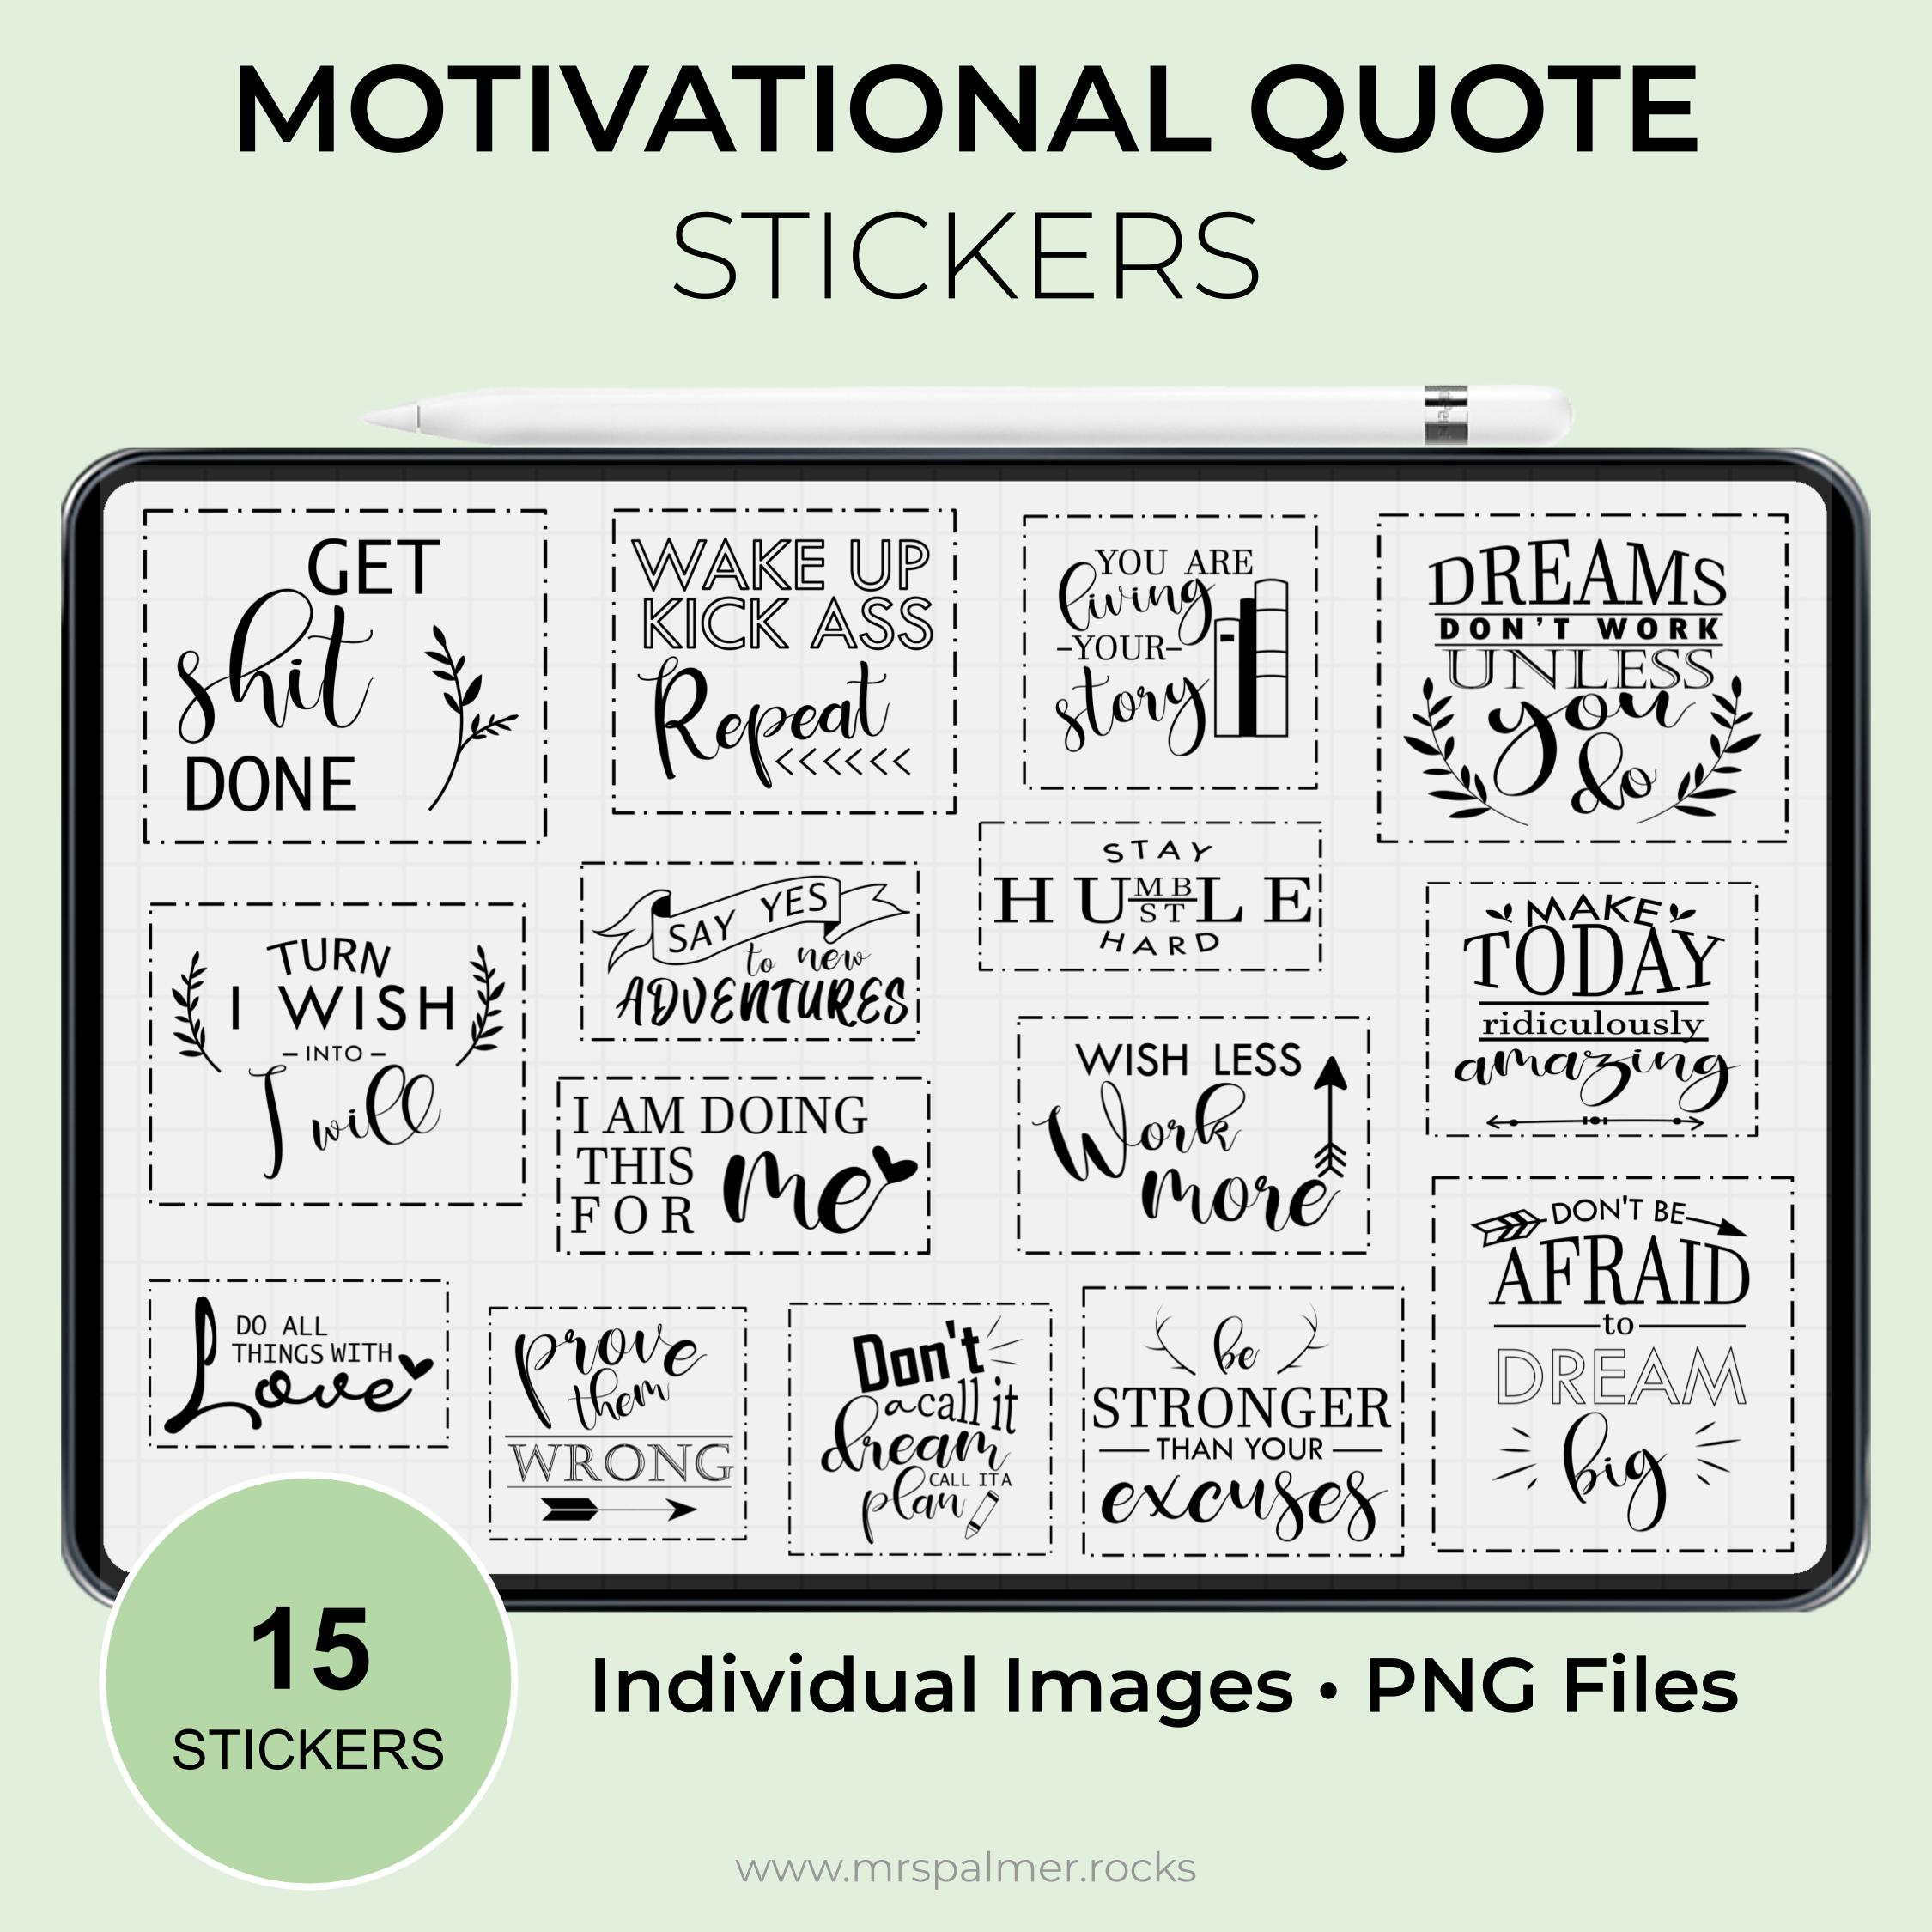 Motivational Quotes Stickers